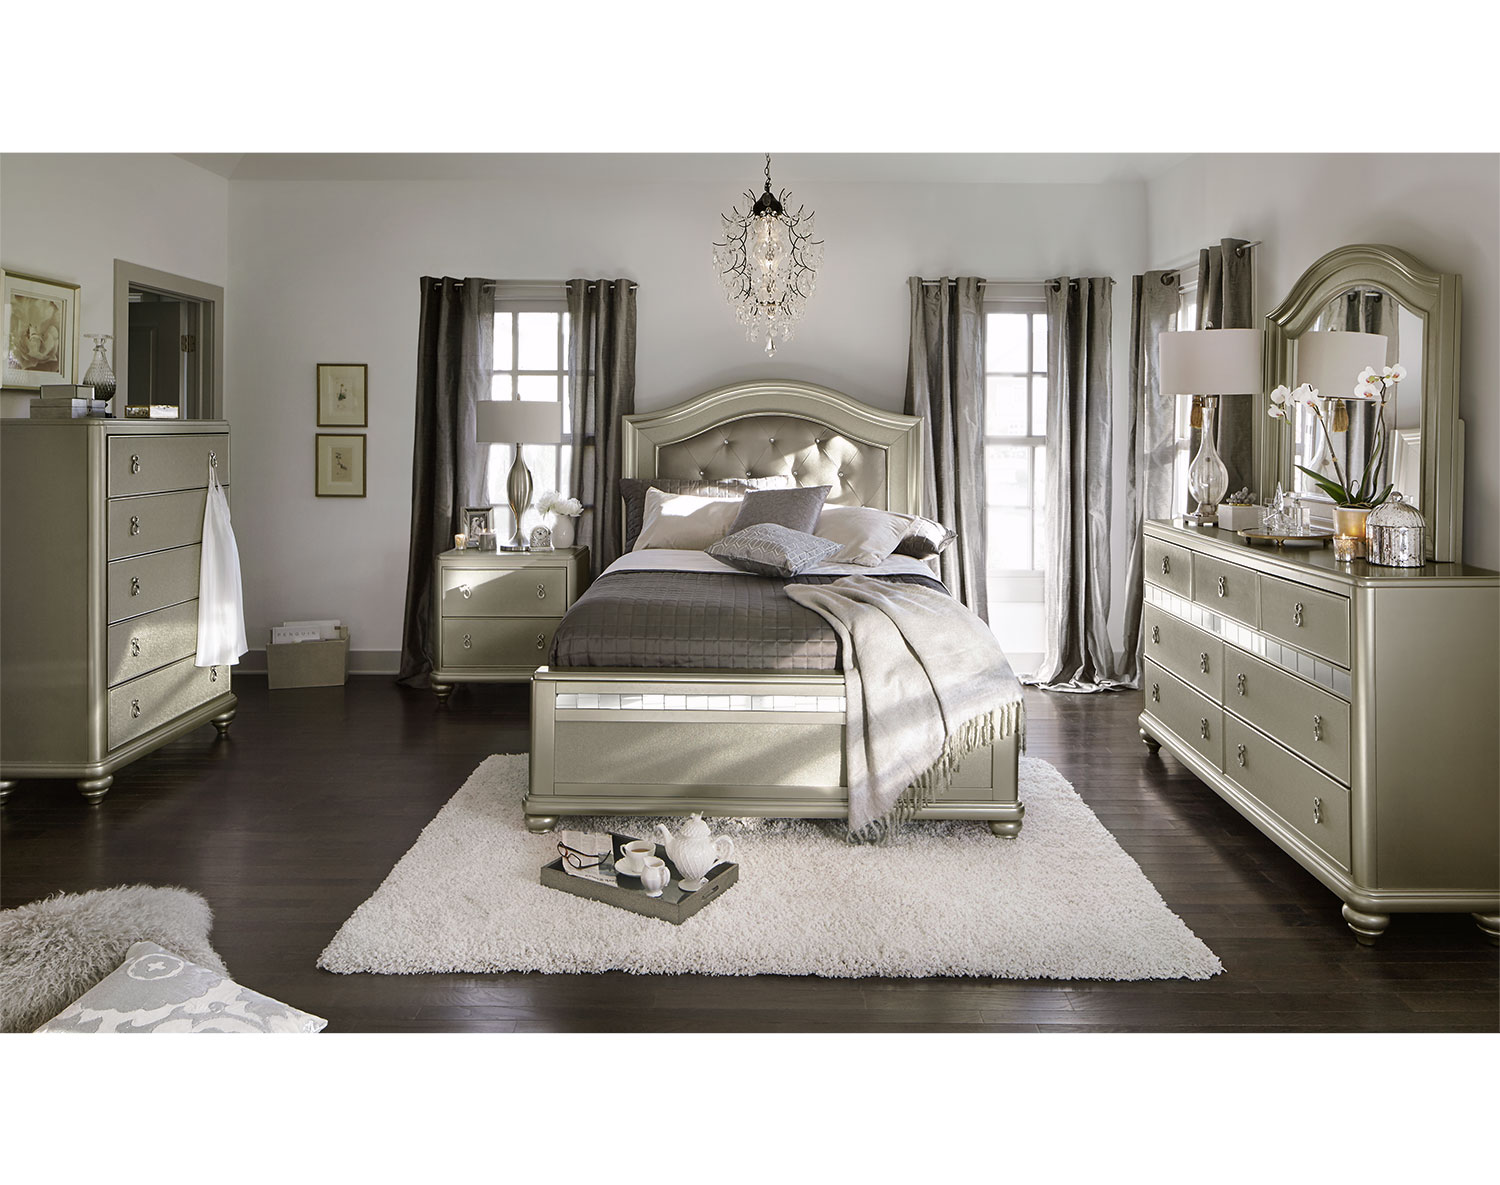 shop our bedroom collections value city furniture 17687 | 431382 fit inside 7c320 320 composite to center center 7c320 320 background color white